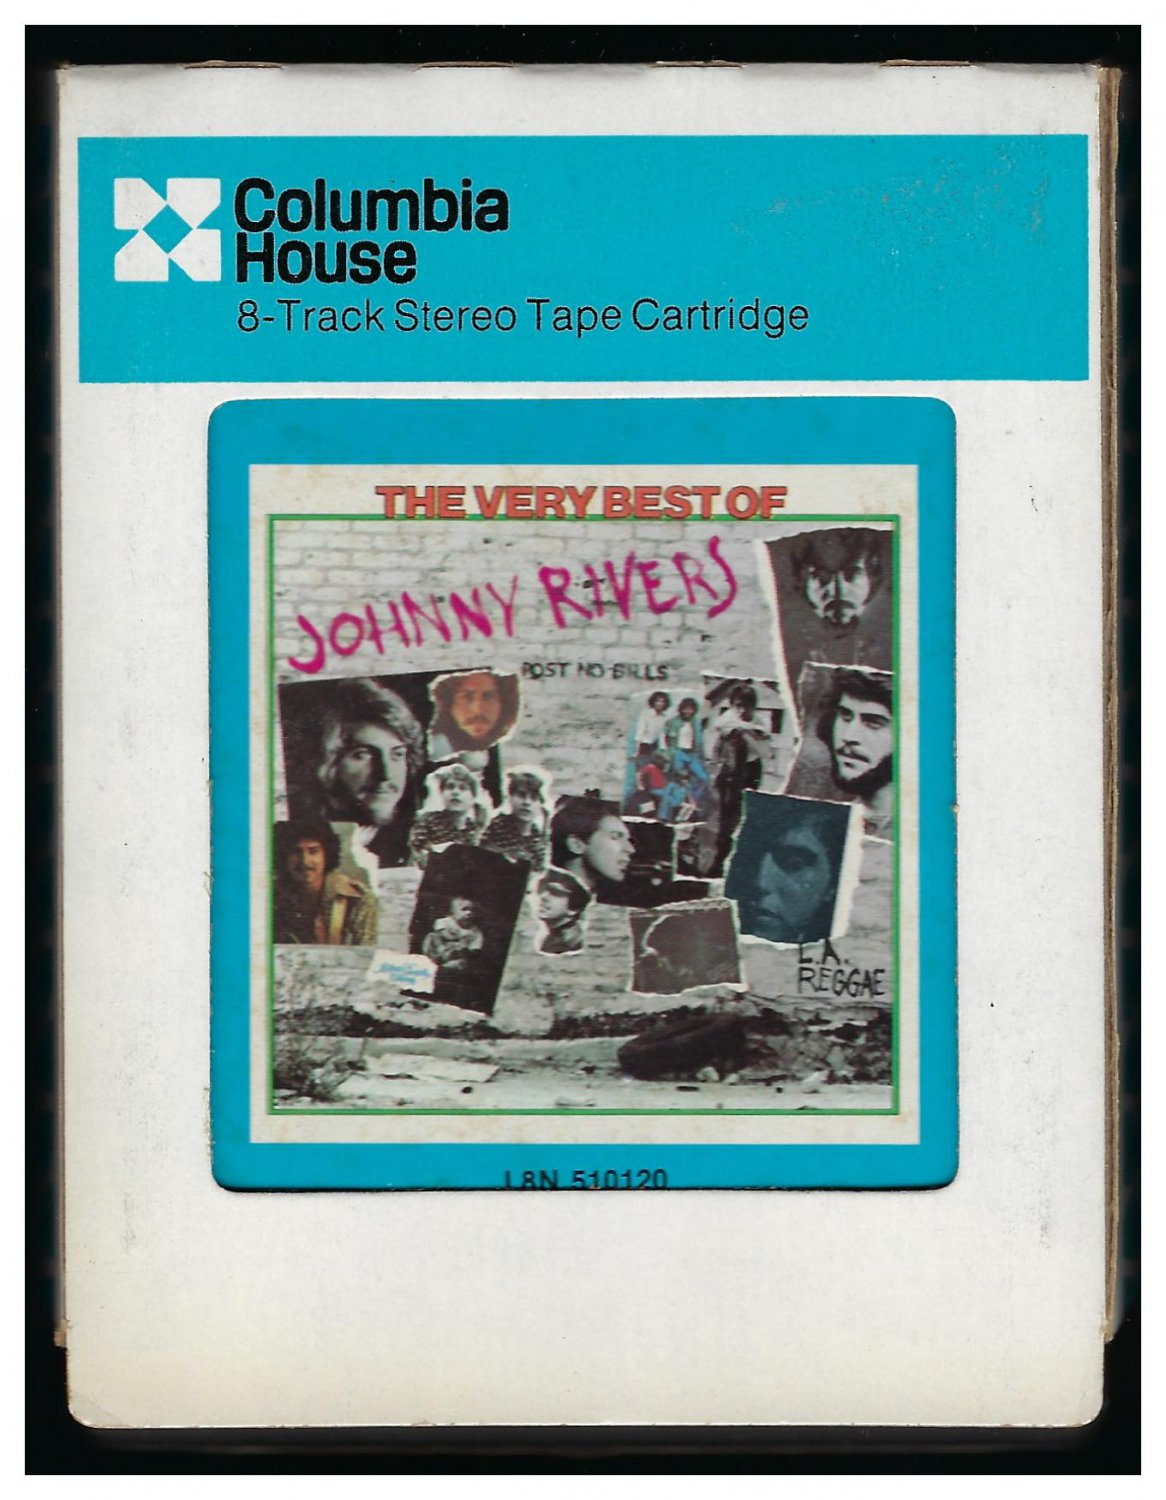 Johnny Rivers - The Very Best Of Johnny Rivers 1975 CRC Re-issue A29A 8-TRACK TAPE